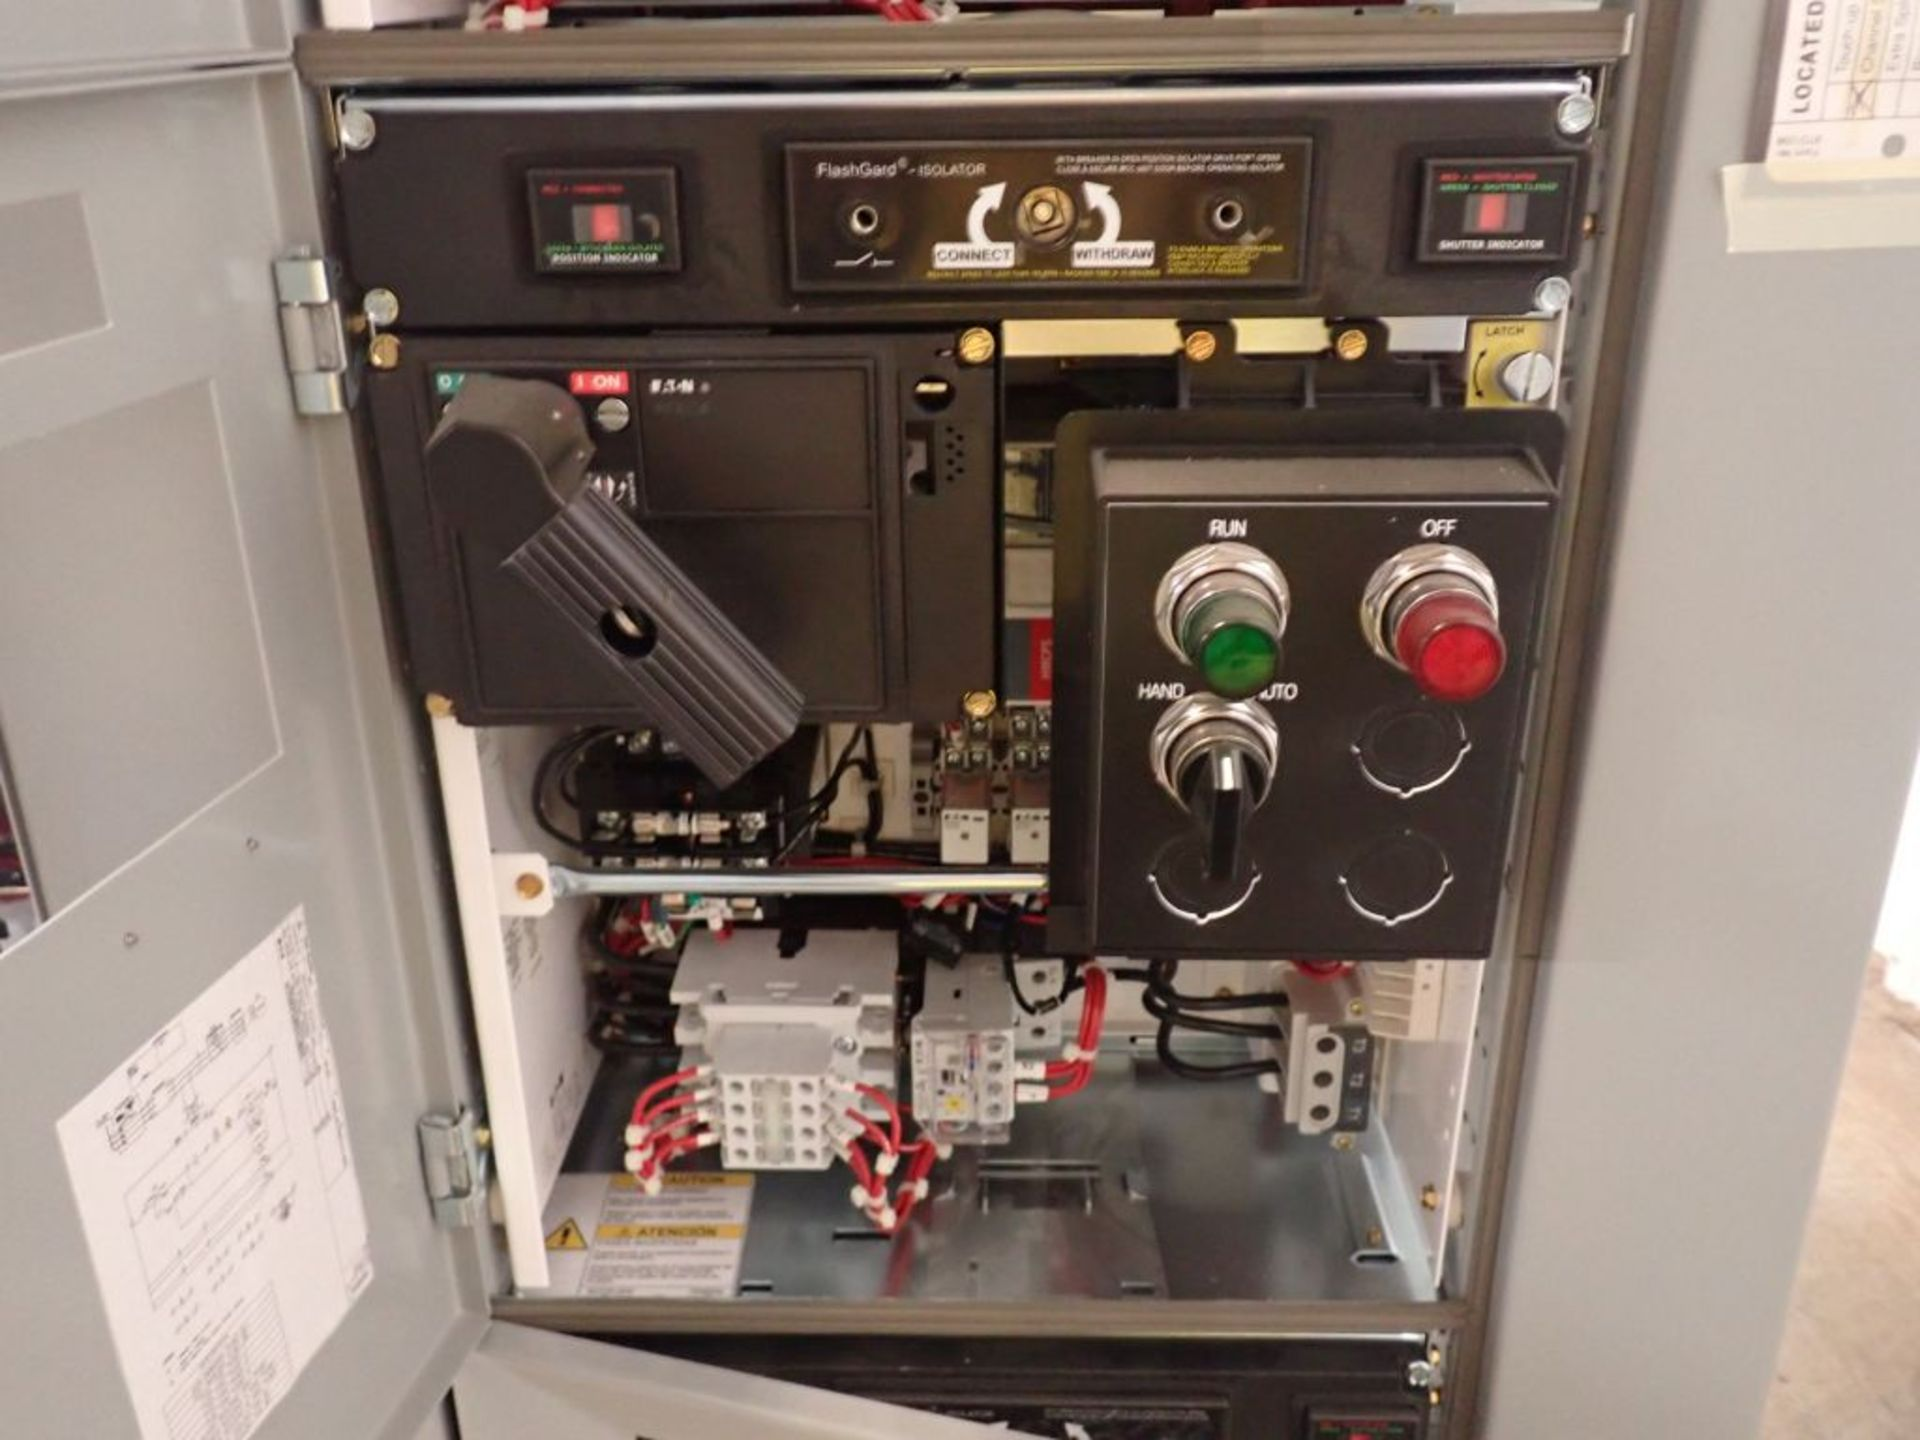 Eaton Freedom 2100 Series Motor Control Center | (2) F206-15A-10HP; (1) FDRB-250A; (1) FDRB-400A; ( - Image 84 of 104